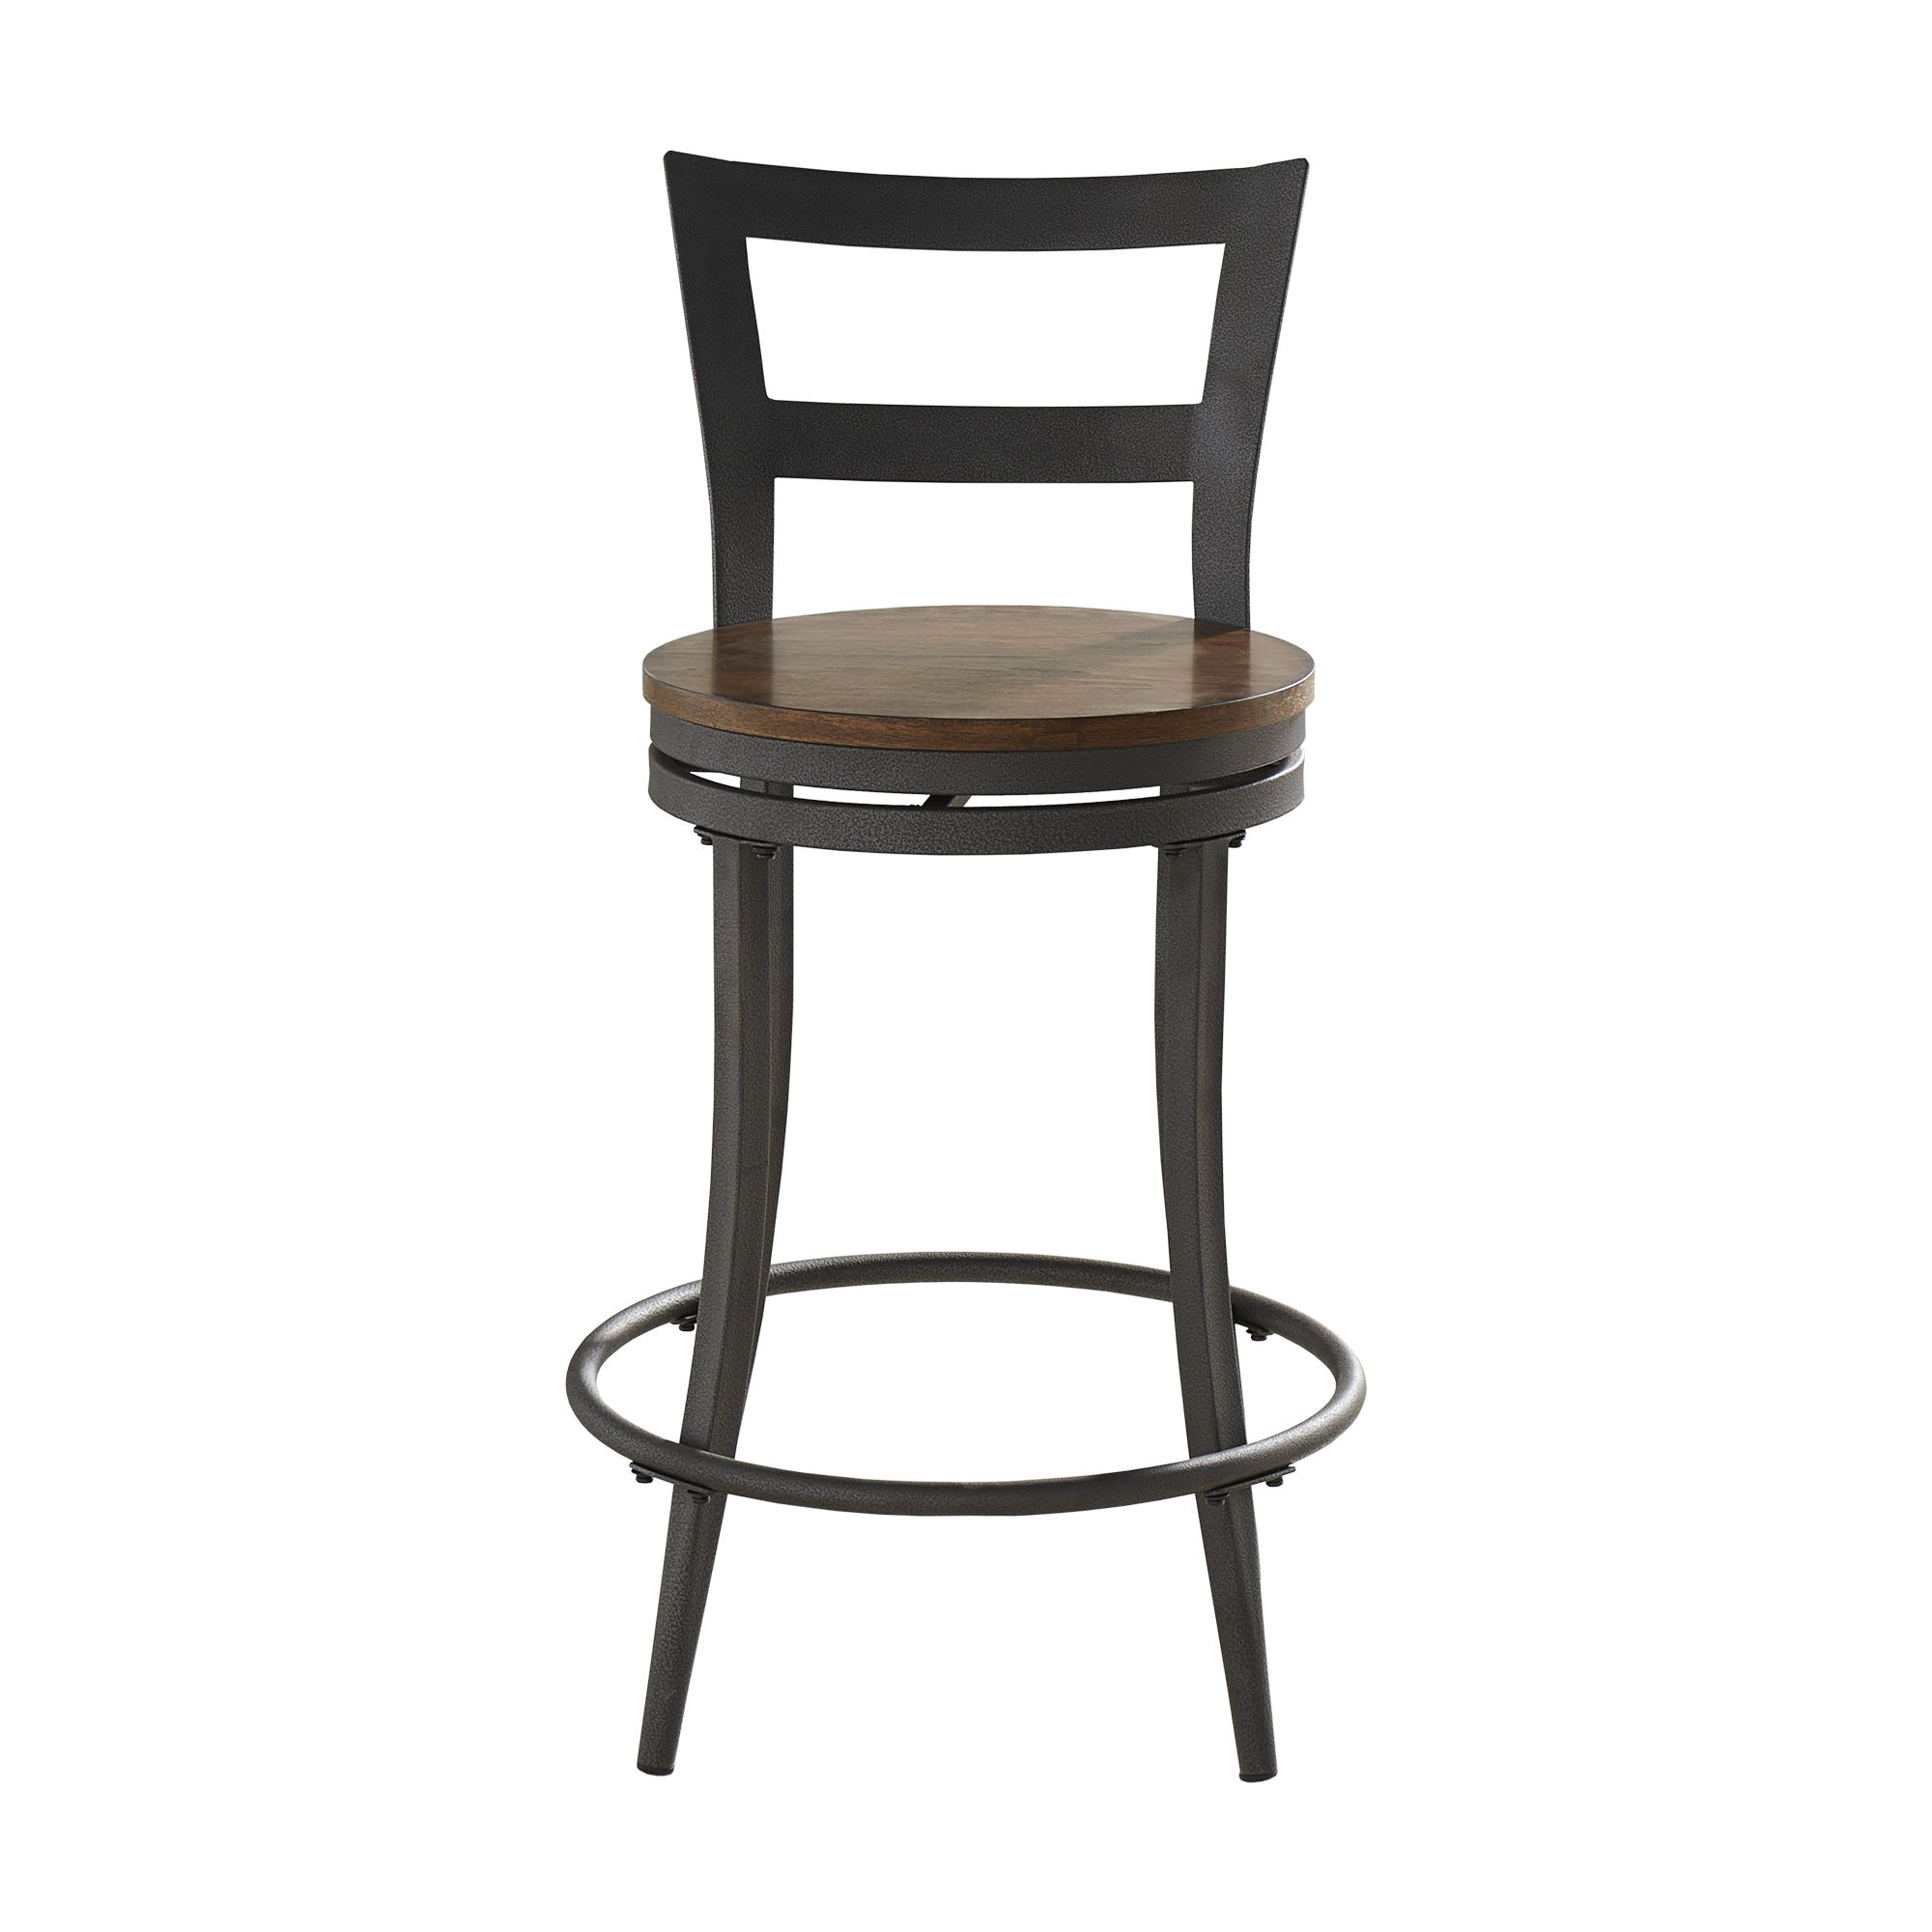 white red oak with use back and wood island bar furniture new rustic kitchen height chairs ideas of backs stools black home fresh barstool stool counter for barstools leather